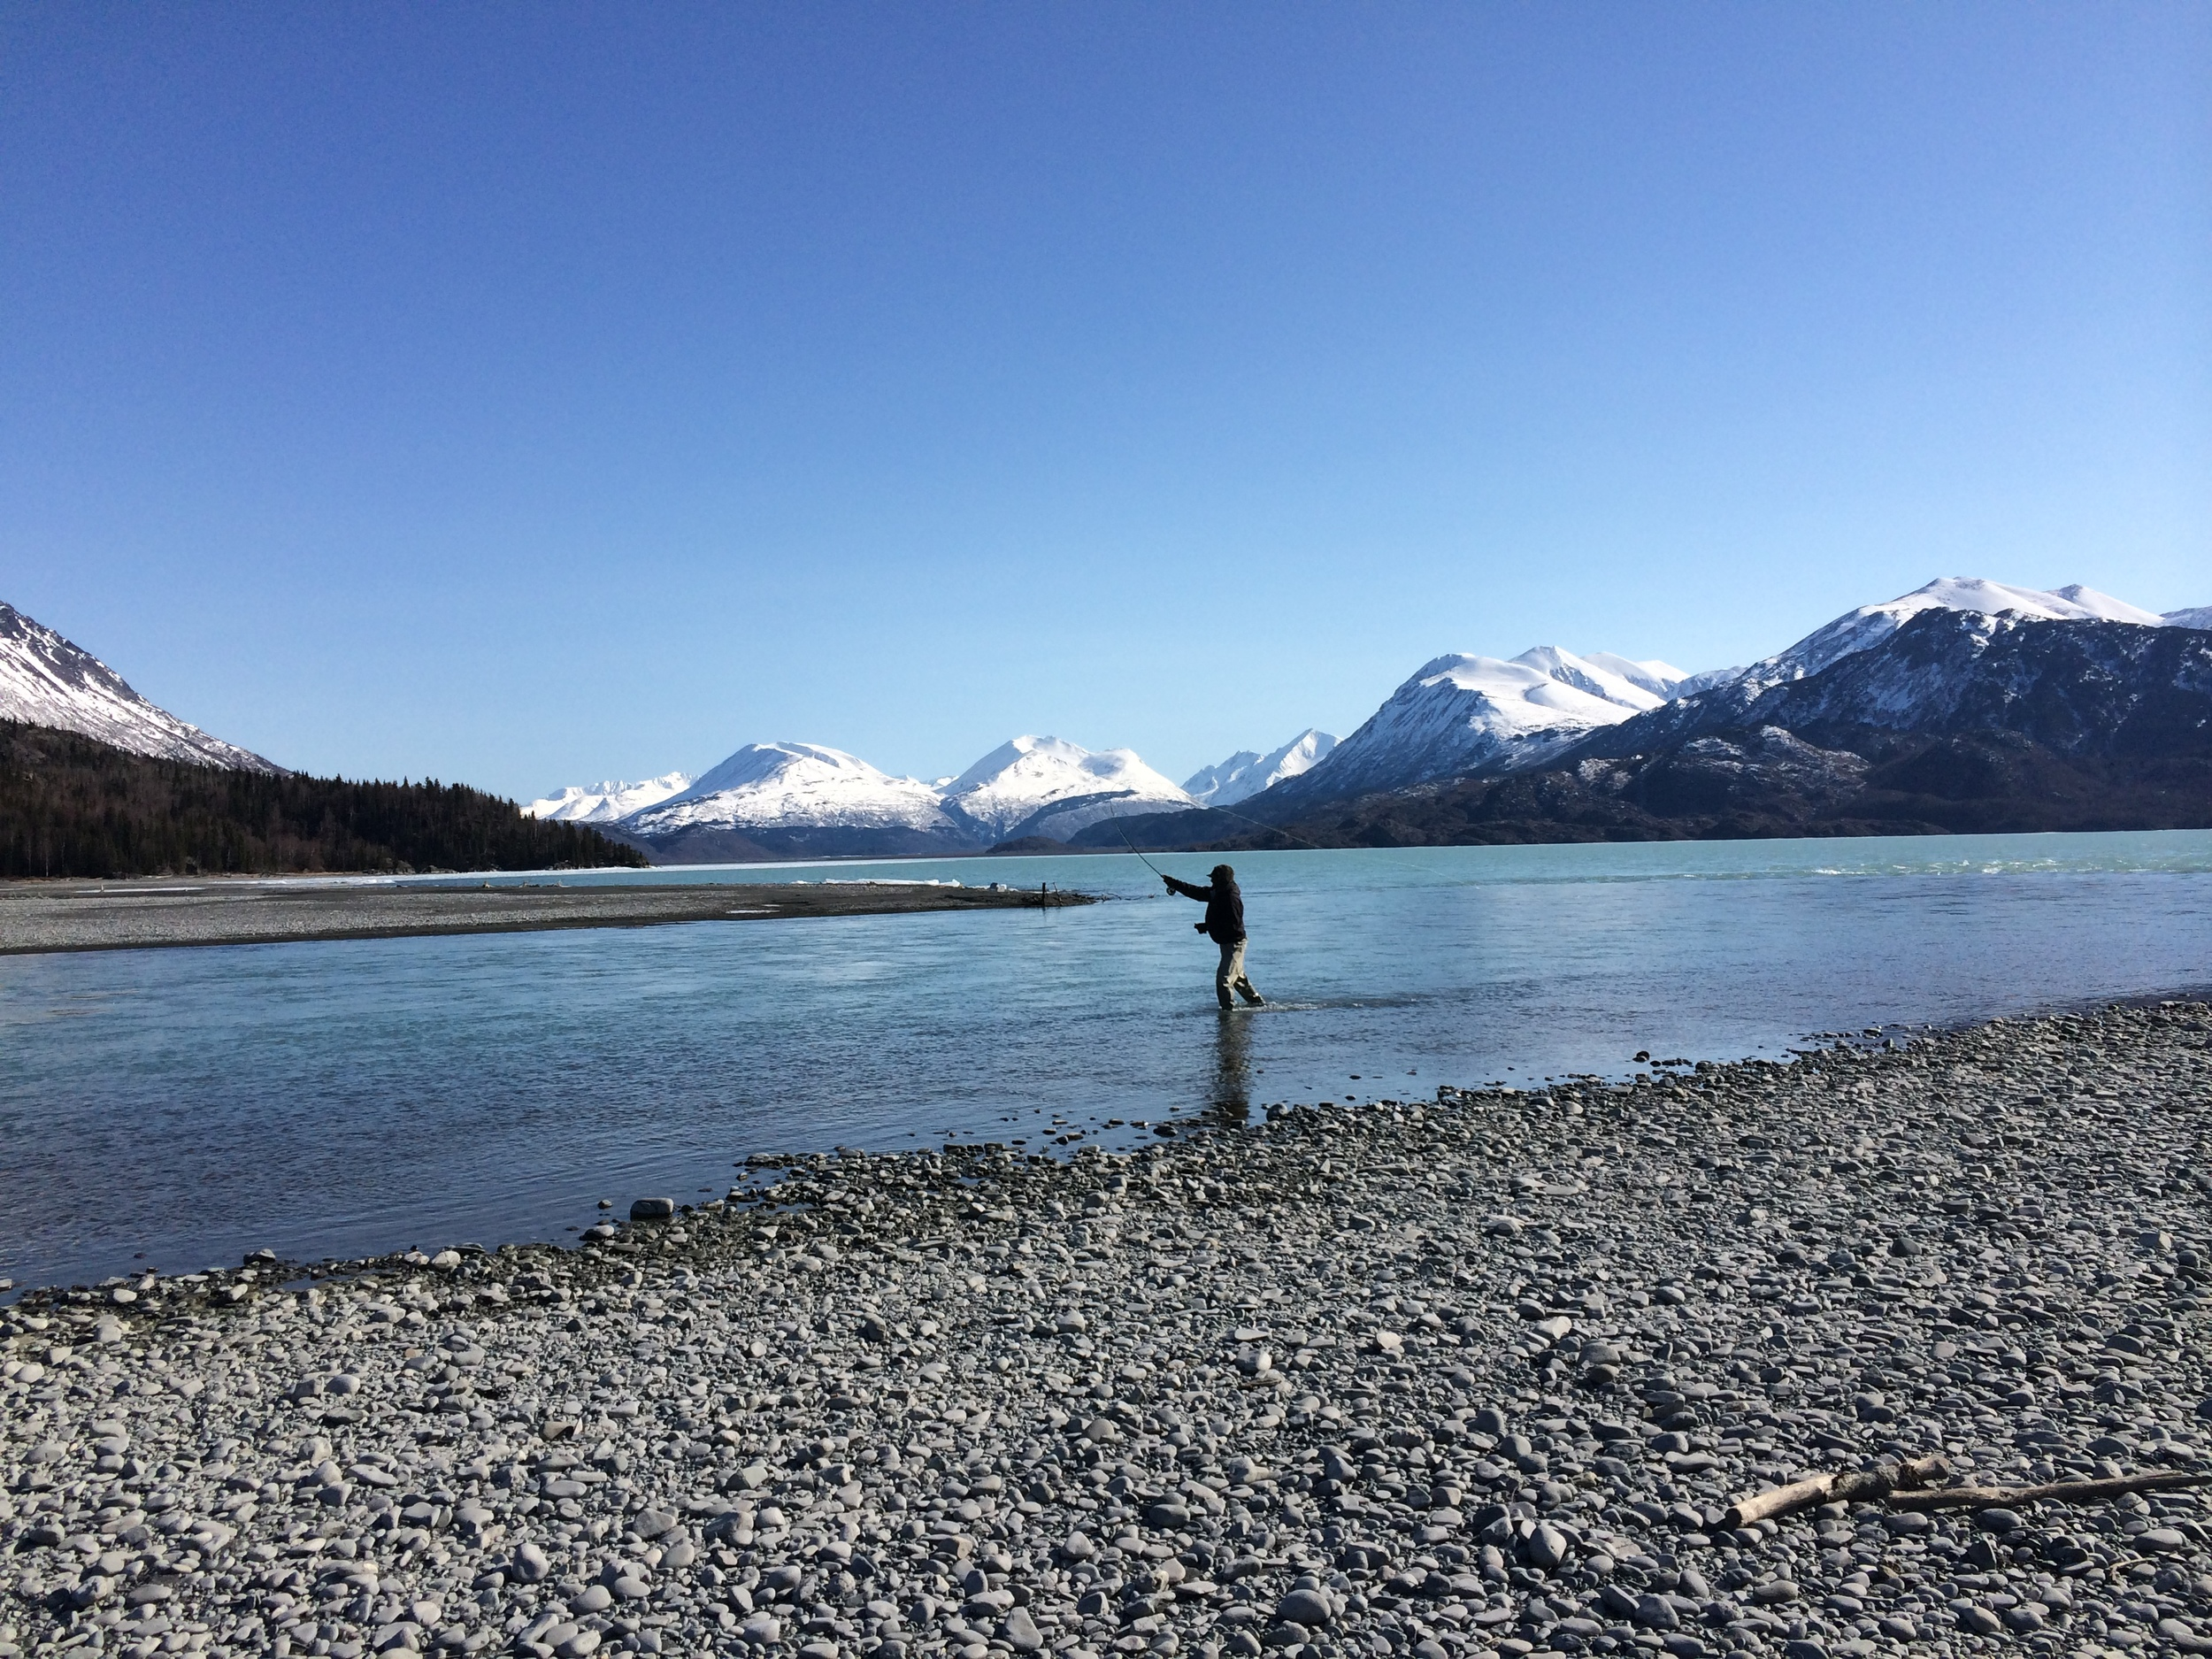 Pat Wolfe fishes for rainbow trout at the mouth of the Kenai River. Skilak Lake, Alaska. (Photo by Emily Stifler Wolfe)